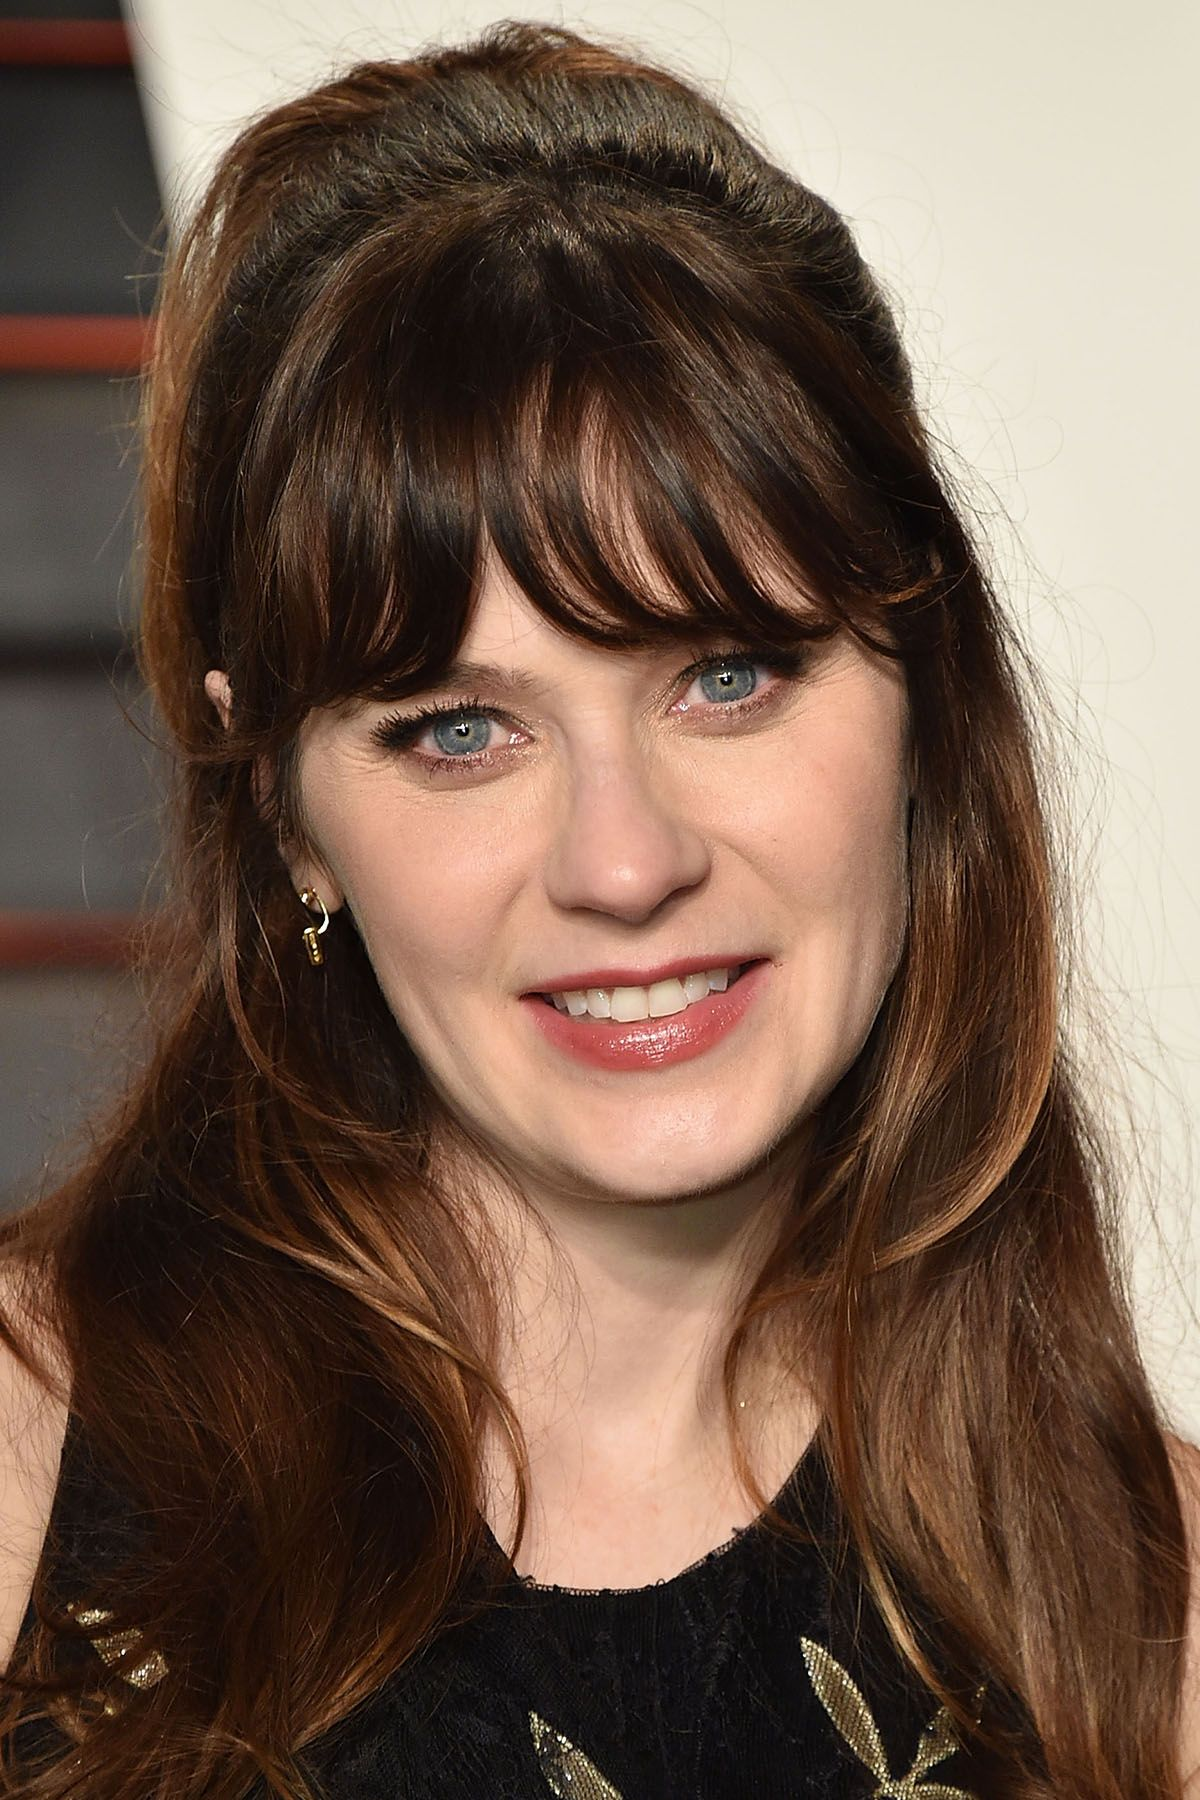 Laura Jacksons New Fringe Is the Haircut of Fall 2019